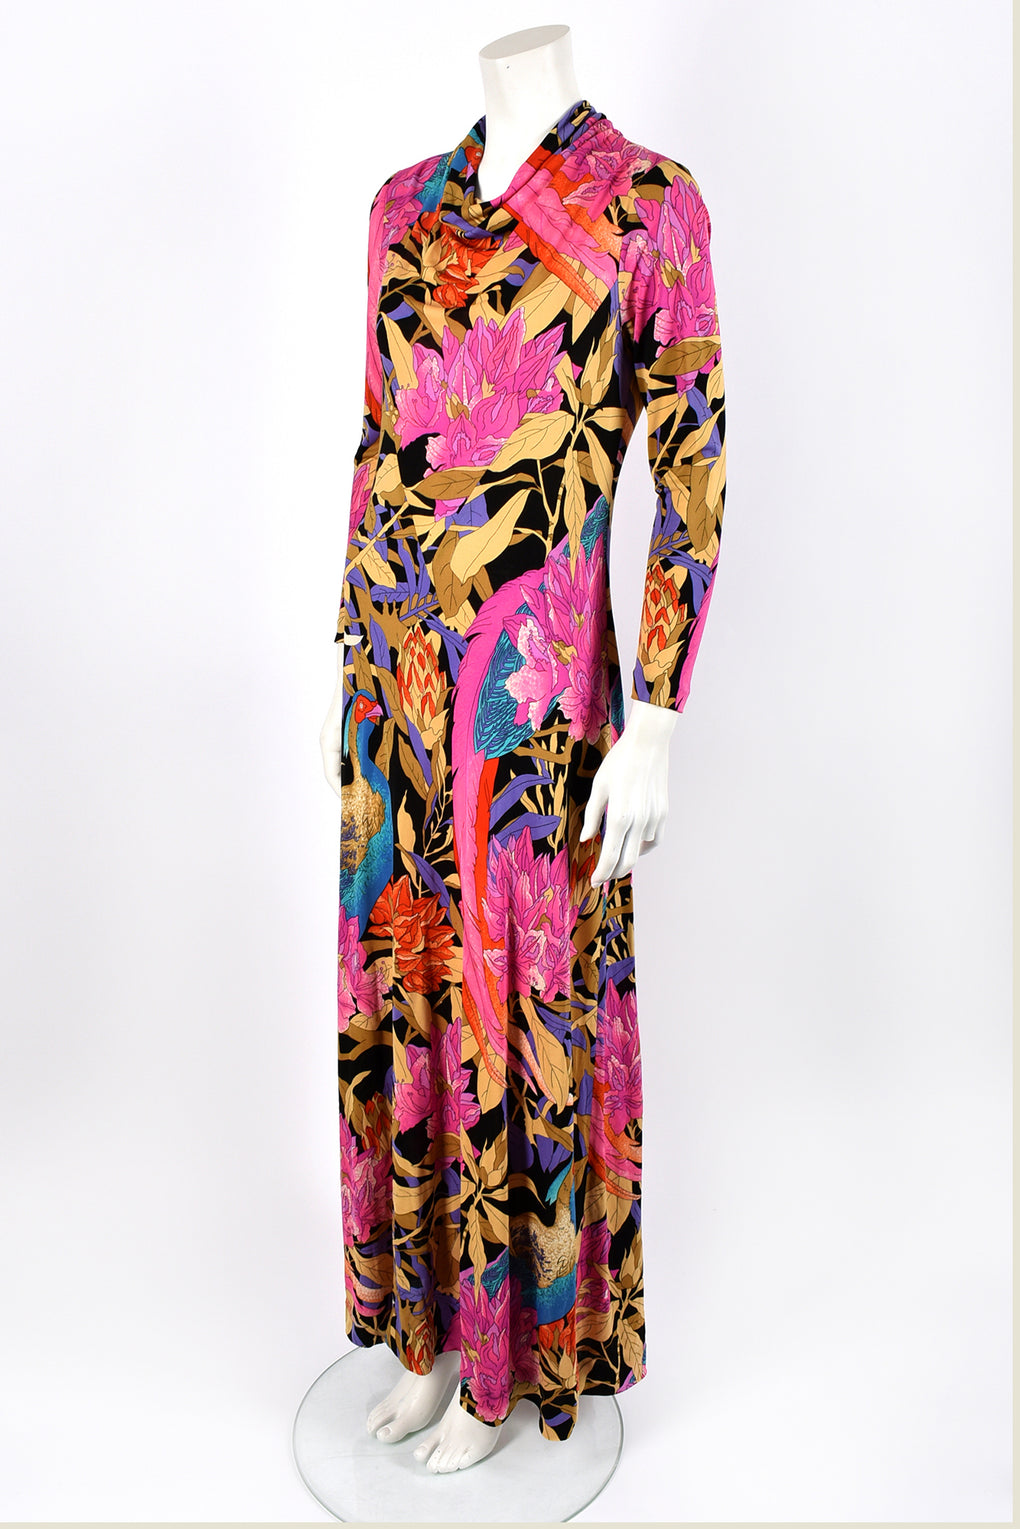 BOTTO 70s silk jersey dress / M-L